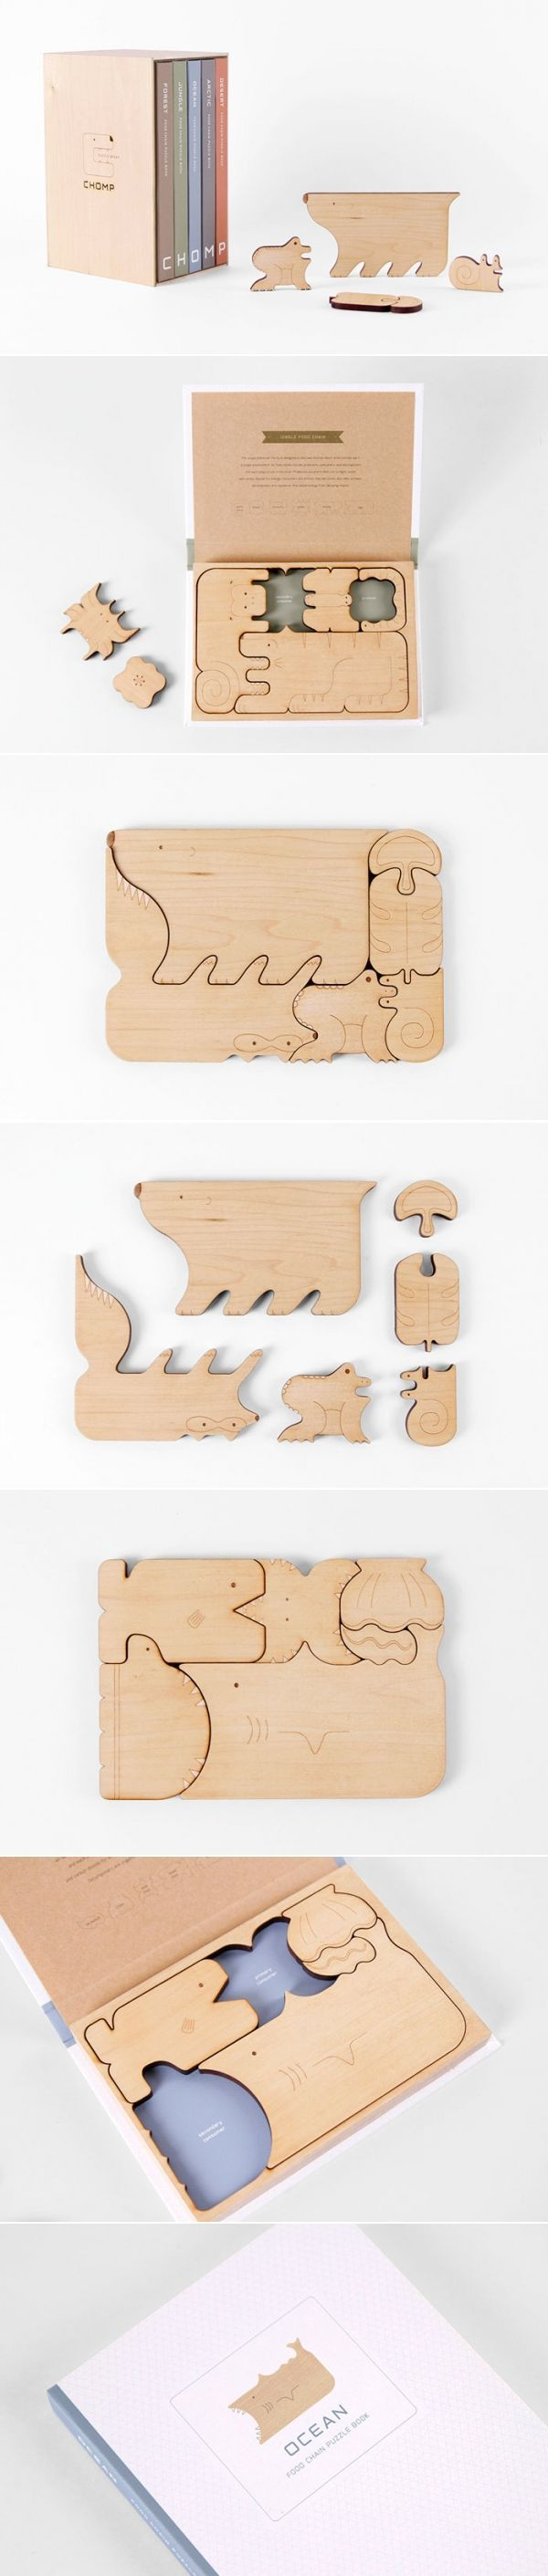 Beautifully Designed CHOMP Food Chain Puzzle Books by Mirim Seo and Kelly Holohan.: